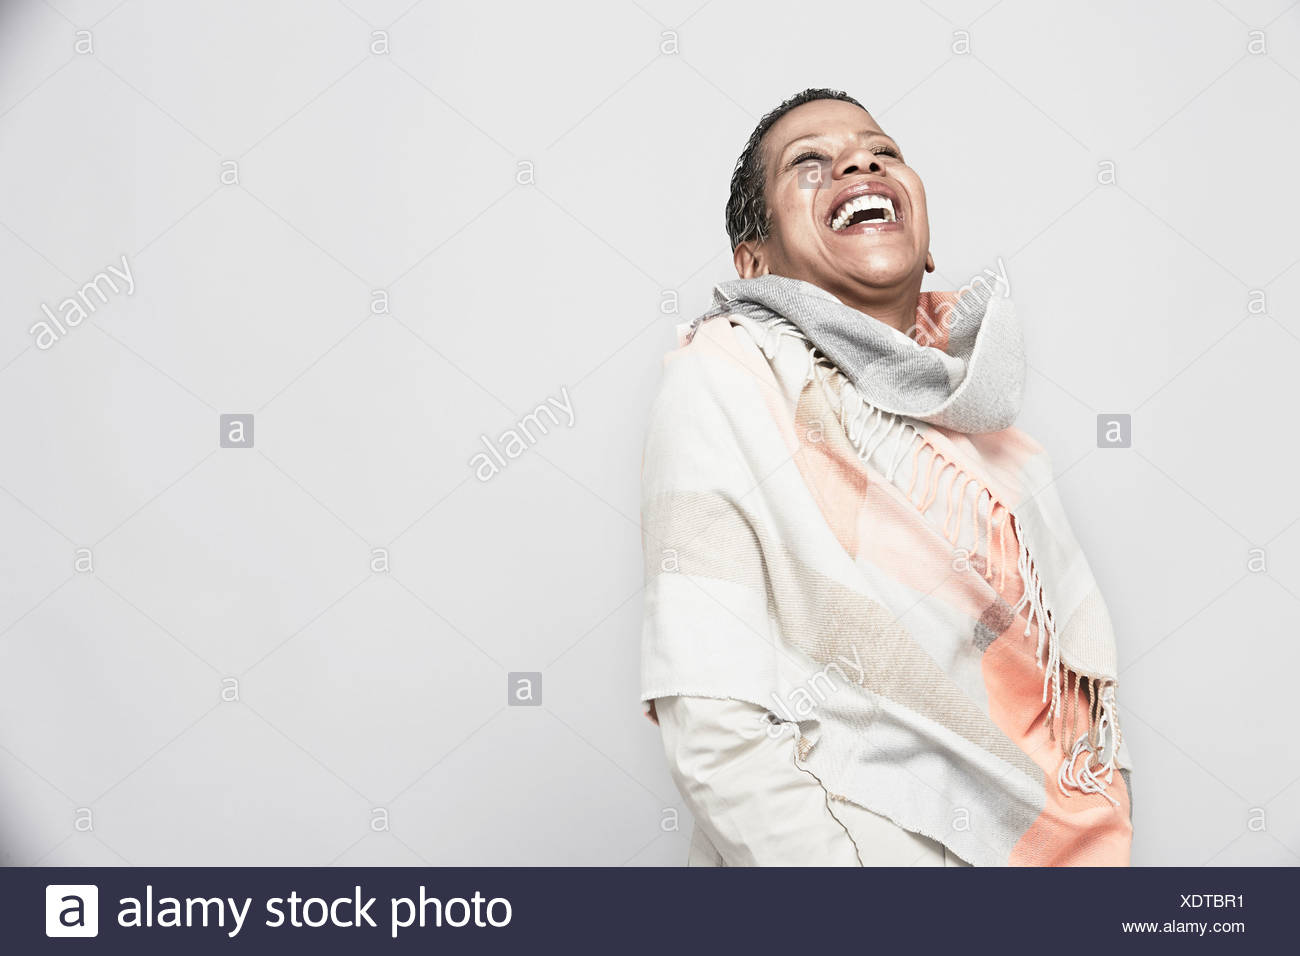 Studio portrait of young woman laughing Photo Stock